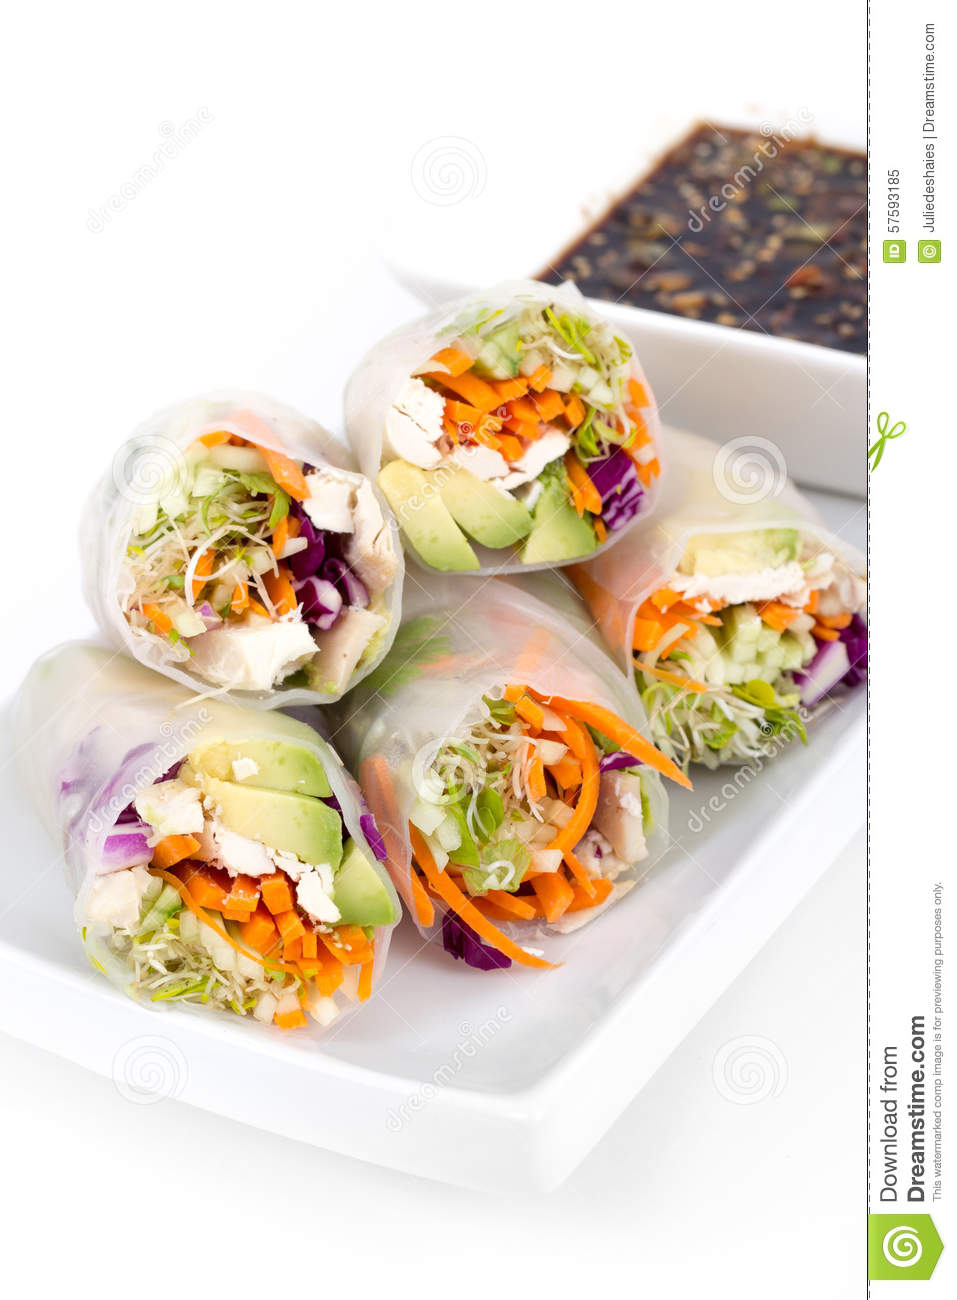 Chicken And Avocado Rice Paper Spring Rolls Stock Image Image Of Roll Studio 57593185